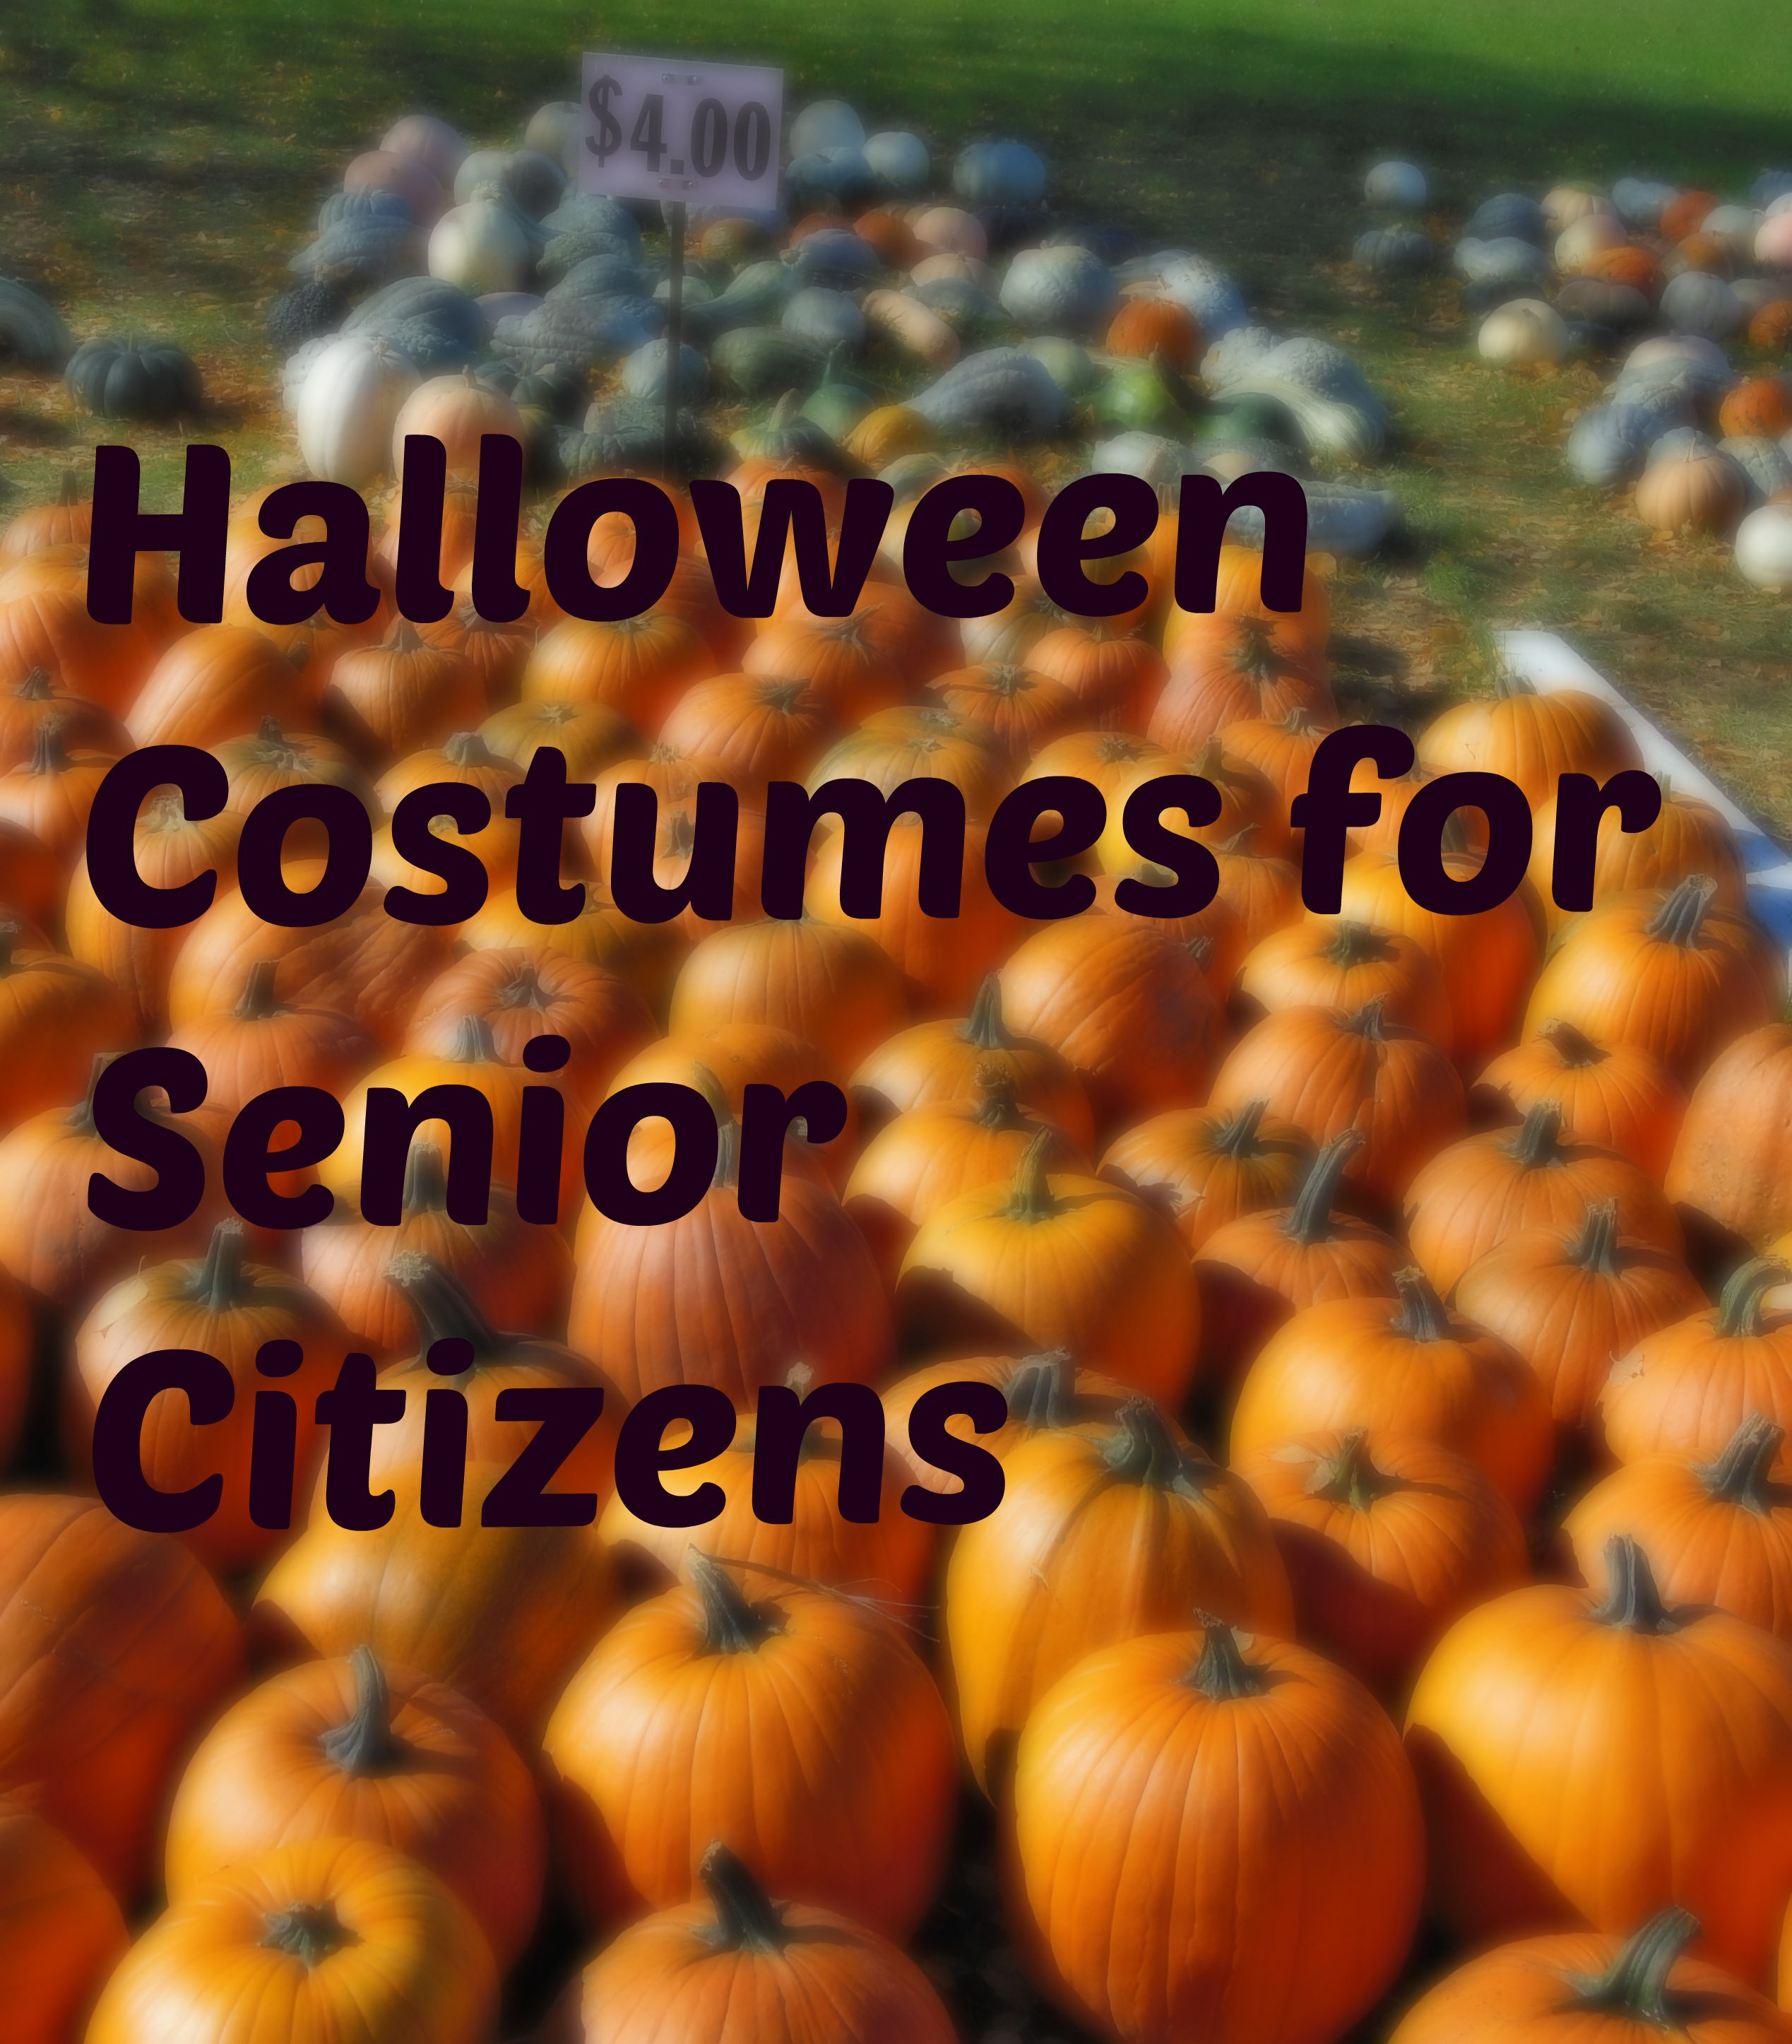 Fun Halloween Costumes For Senior Citizenslife After 60